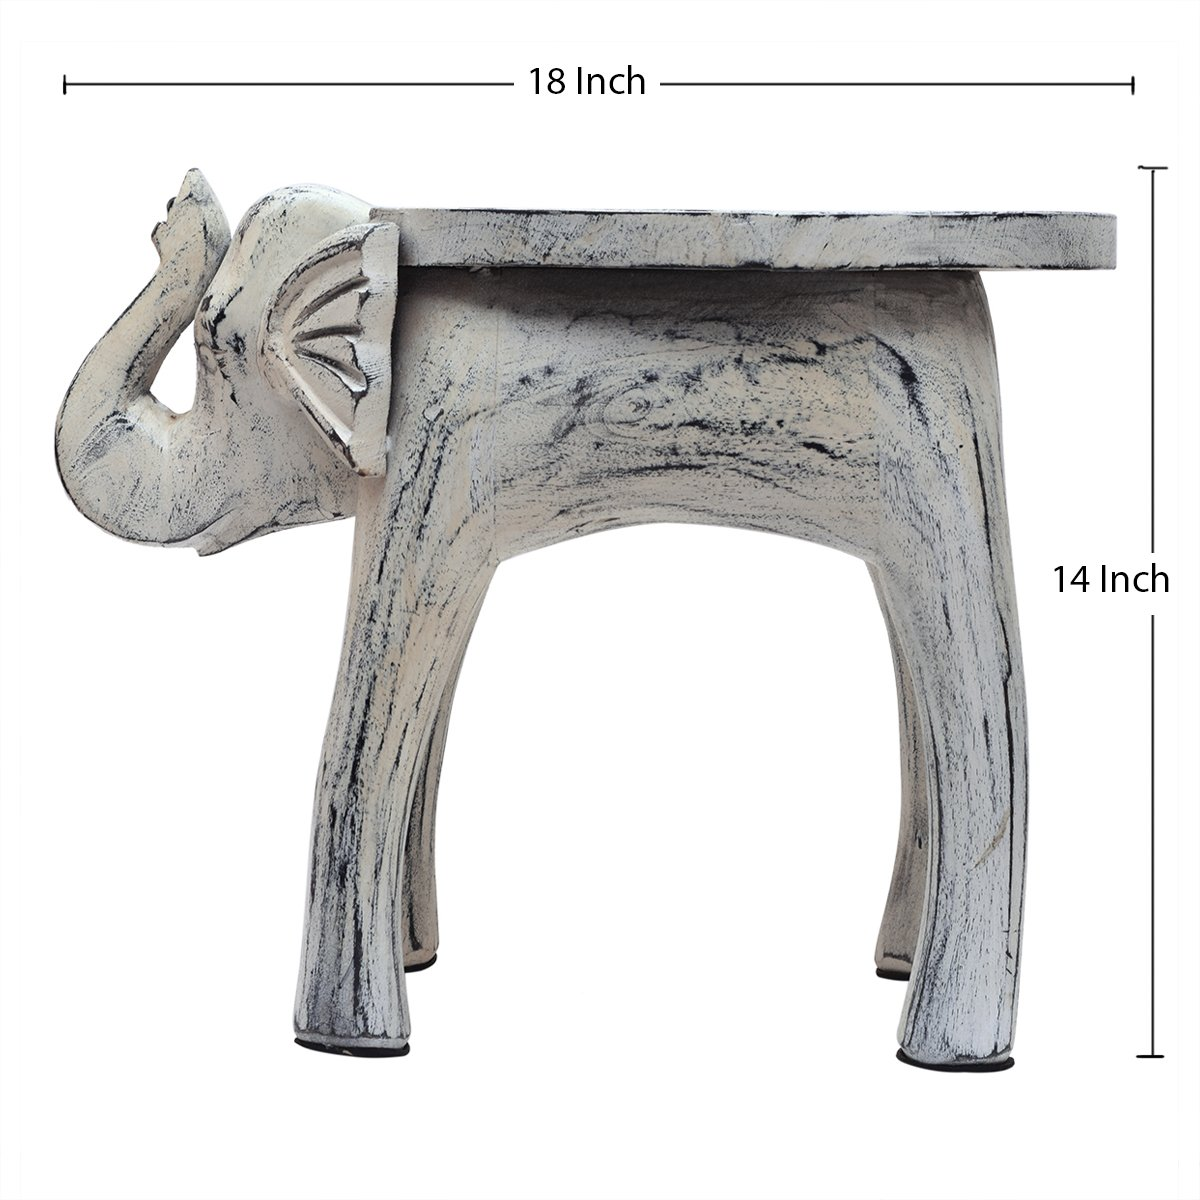 Wooden Side Table End Table Round Bedside Sofa Stool White Distressed Finish Elephant Head Design Home Kids Room Furniture Shabby Chic Decor - 18 x 13 x 14 inches by Store Indya (Image #6)